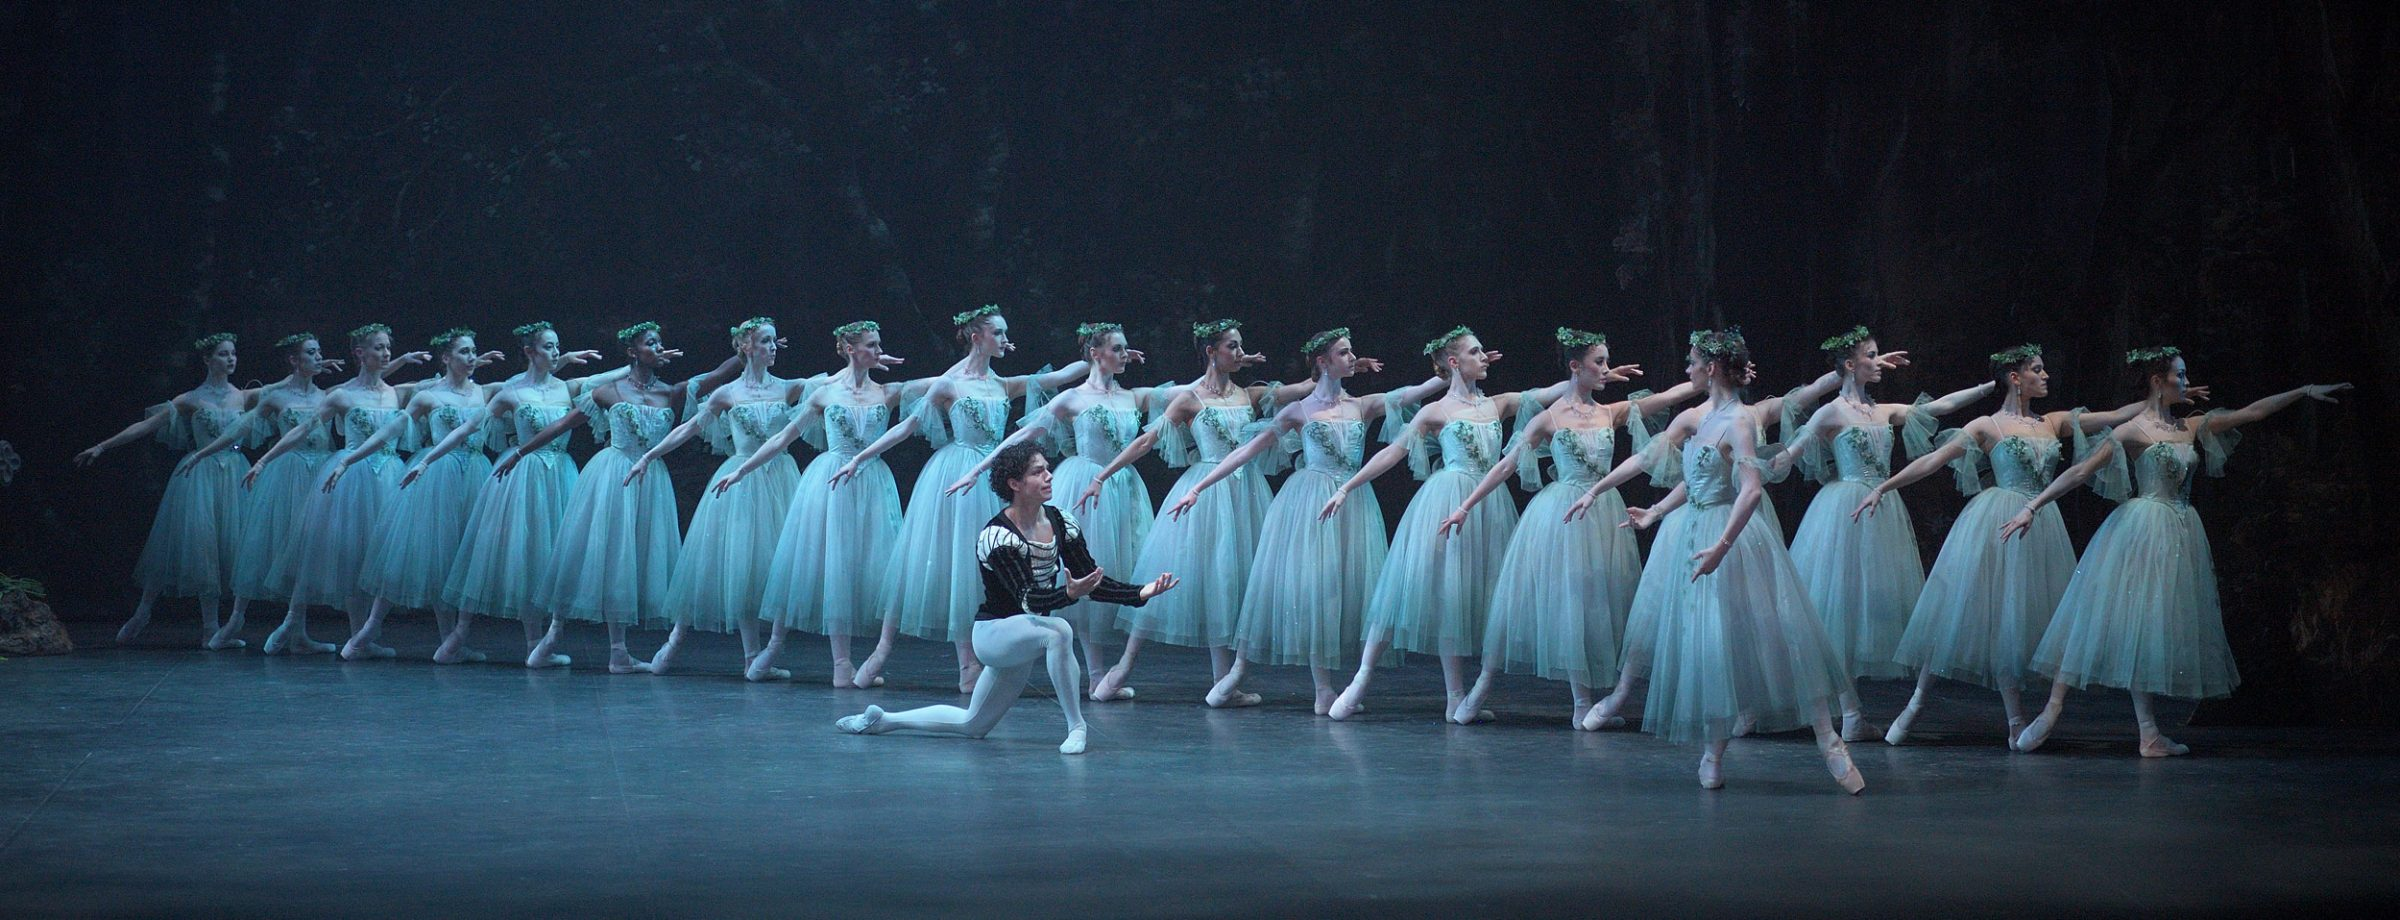 Laurretta-Summerscales-as-Myrtha-and-Isaac-Hernandez-as-Albrecht-in-Mary-Skeaping's-Giselle-(c)-Laurent-Liotardo